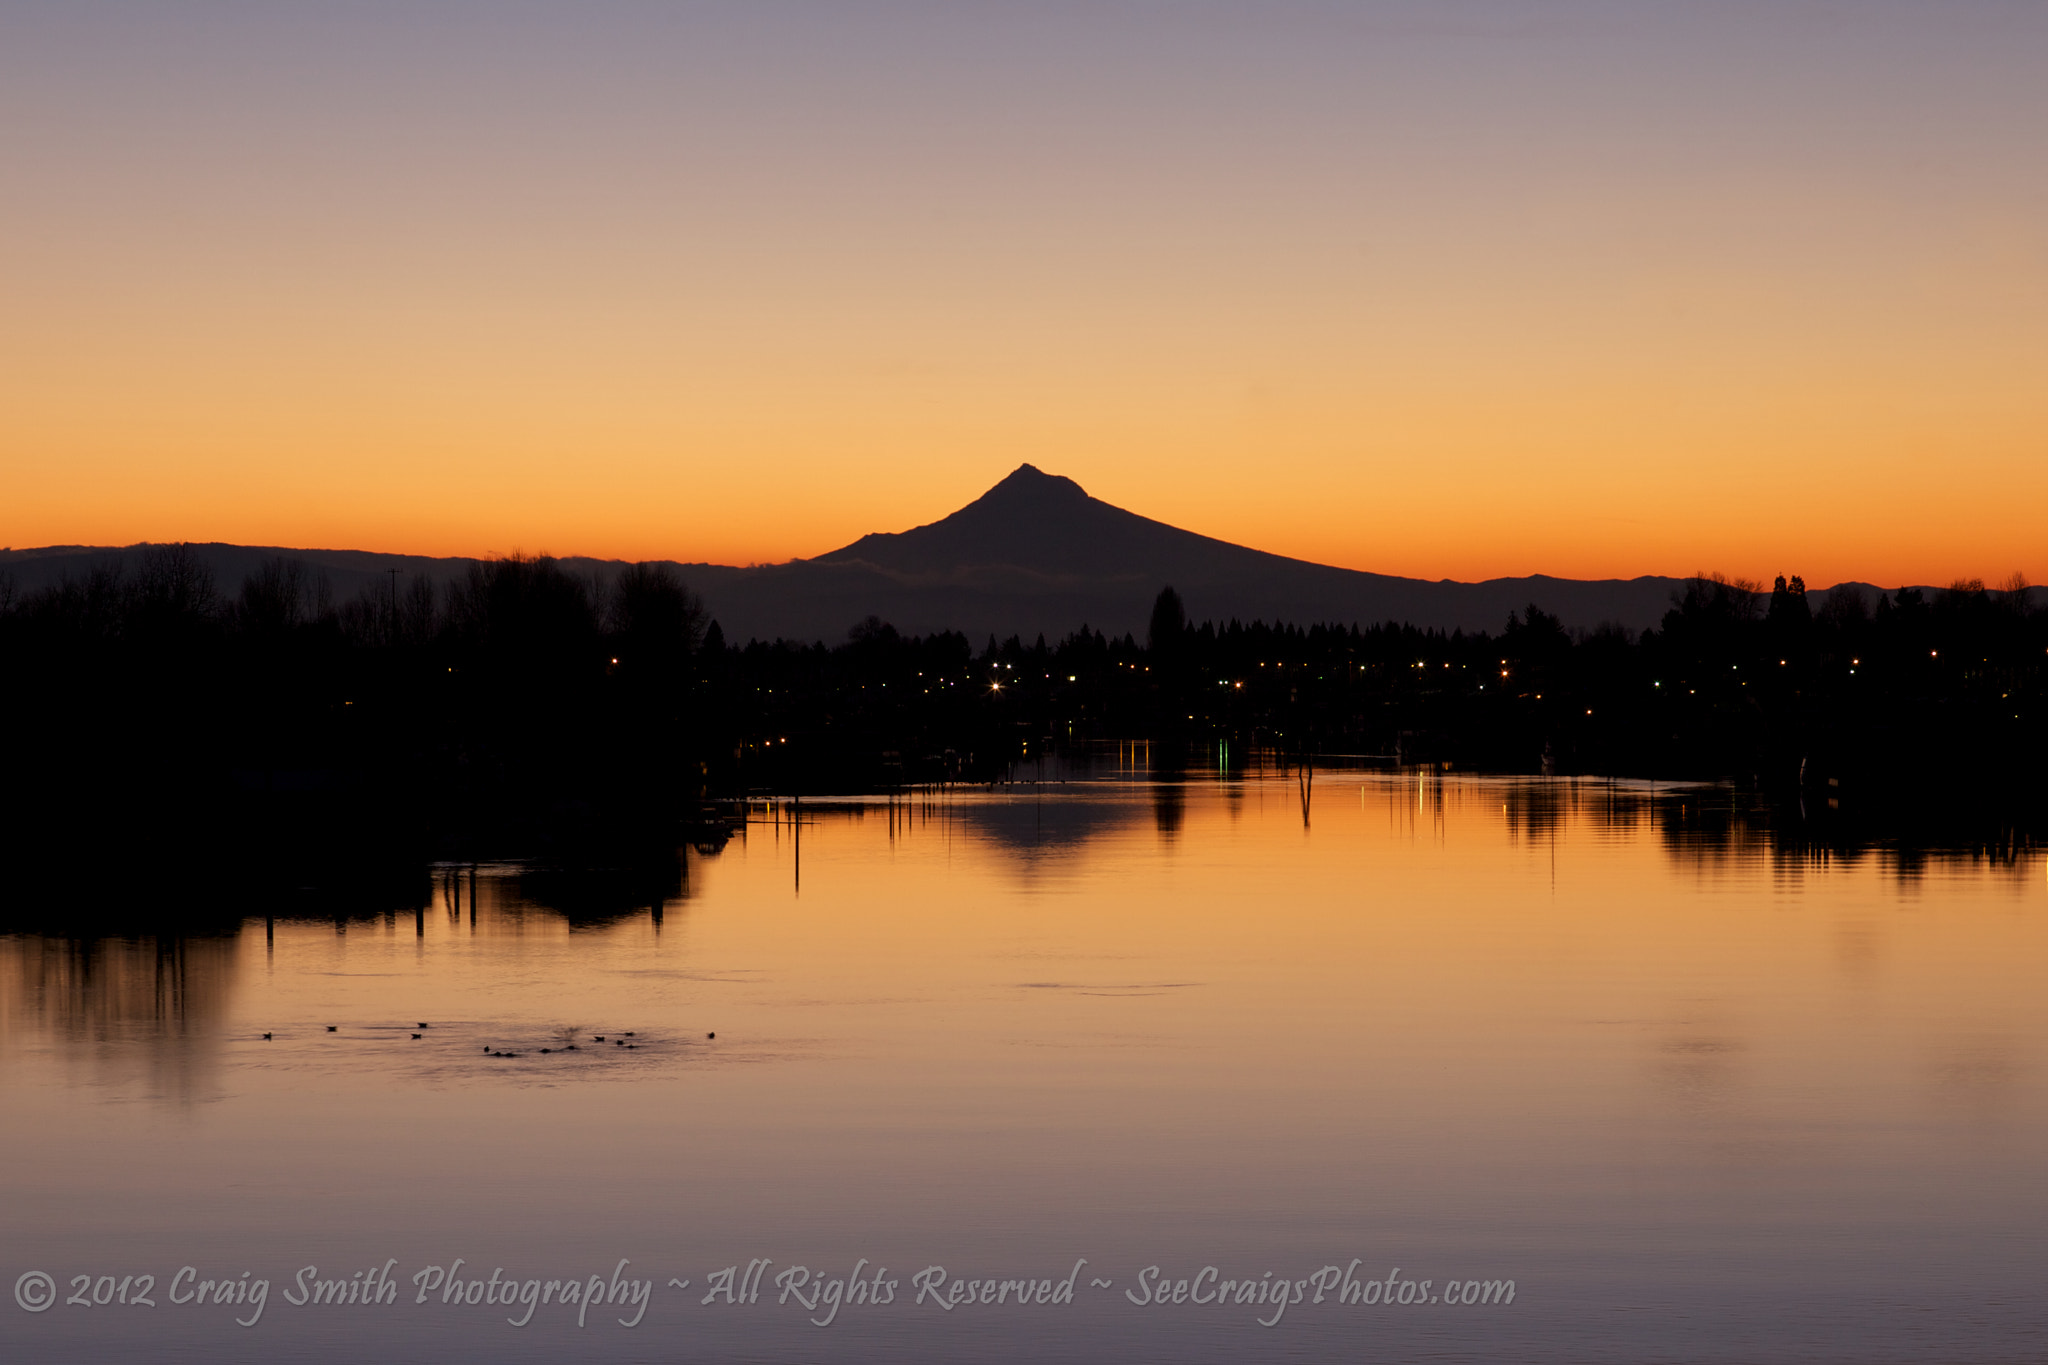 Photograph Mt. Hood Sunrise by Craig Smith on 500px